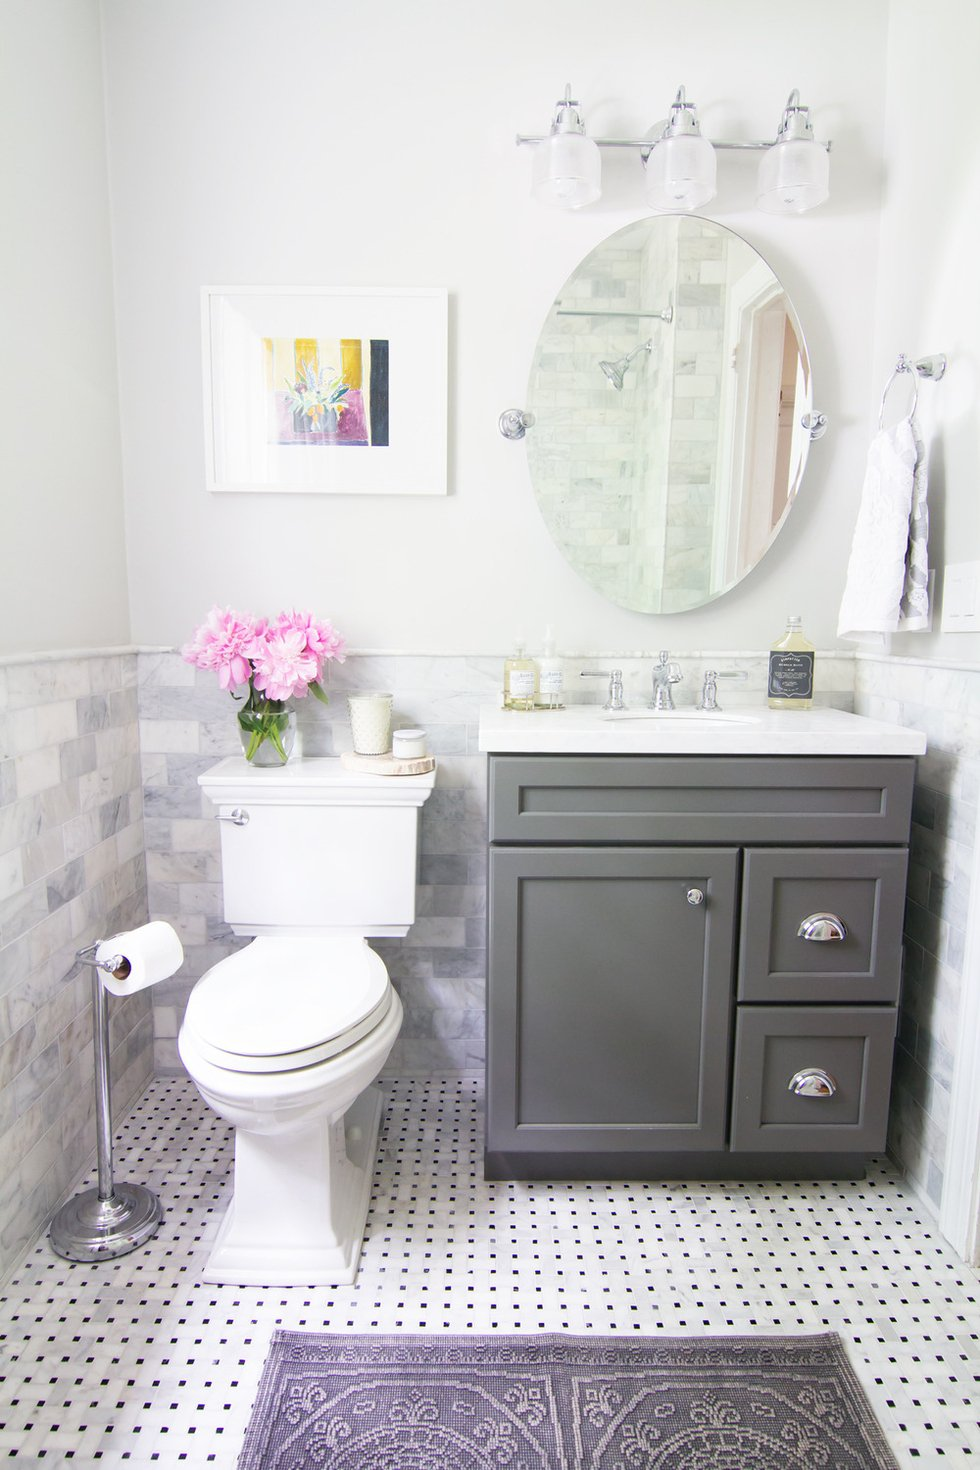 Go for the Bathroom Renovation Today to change your style